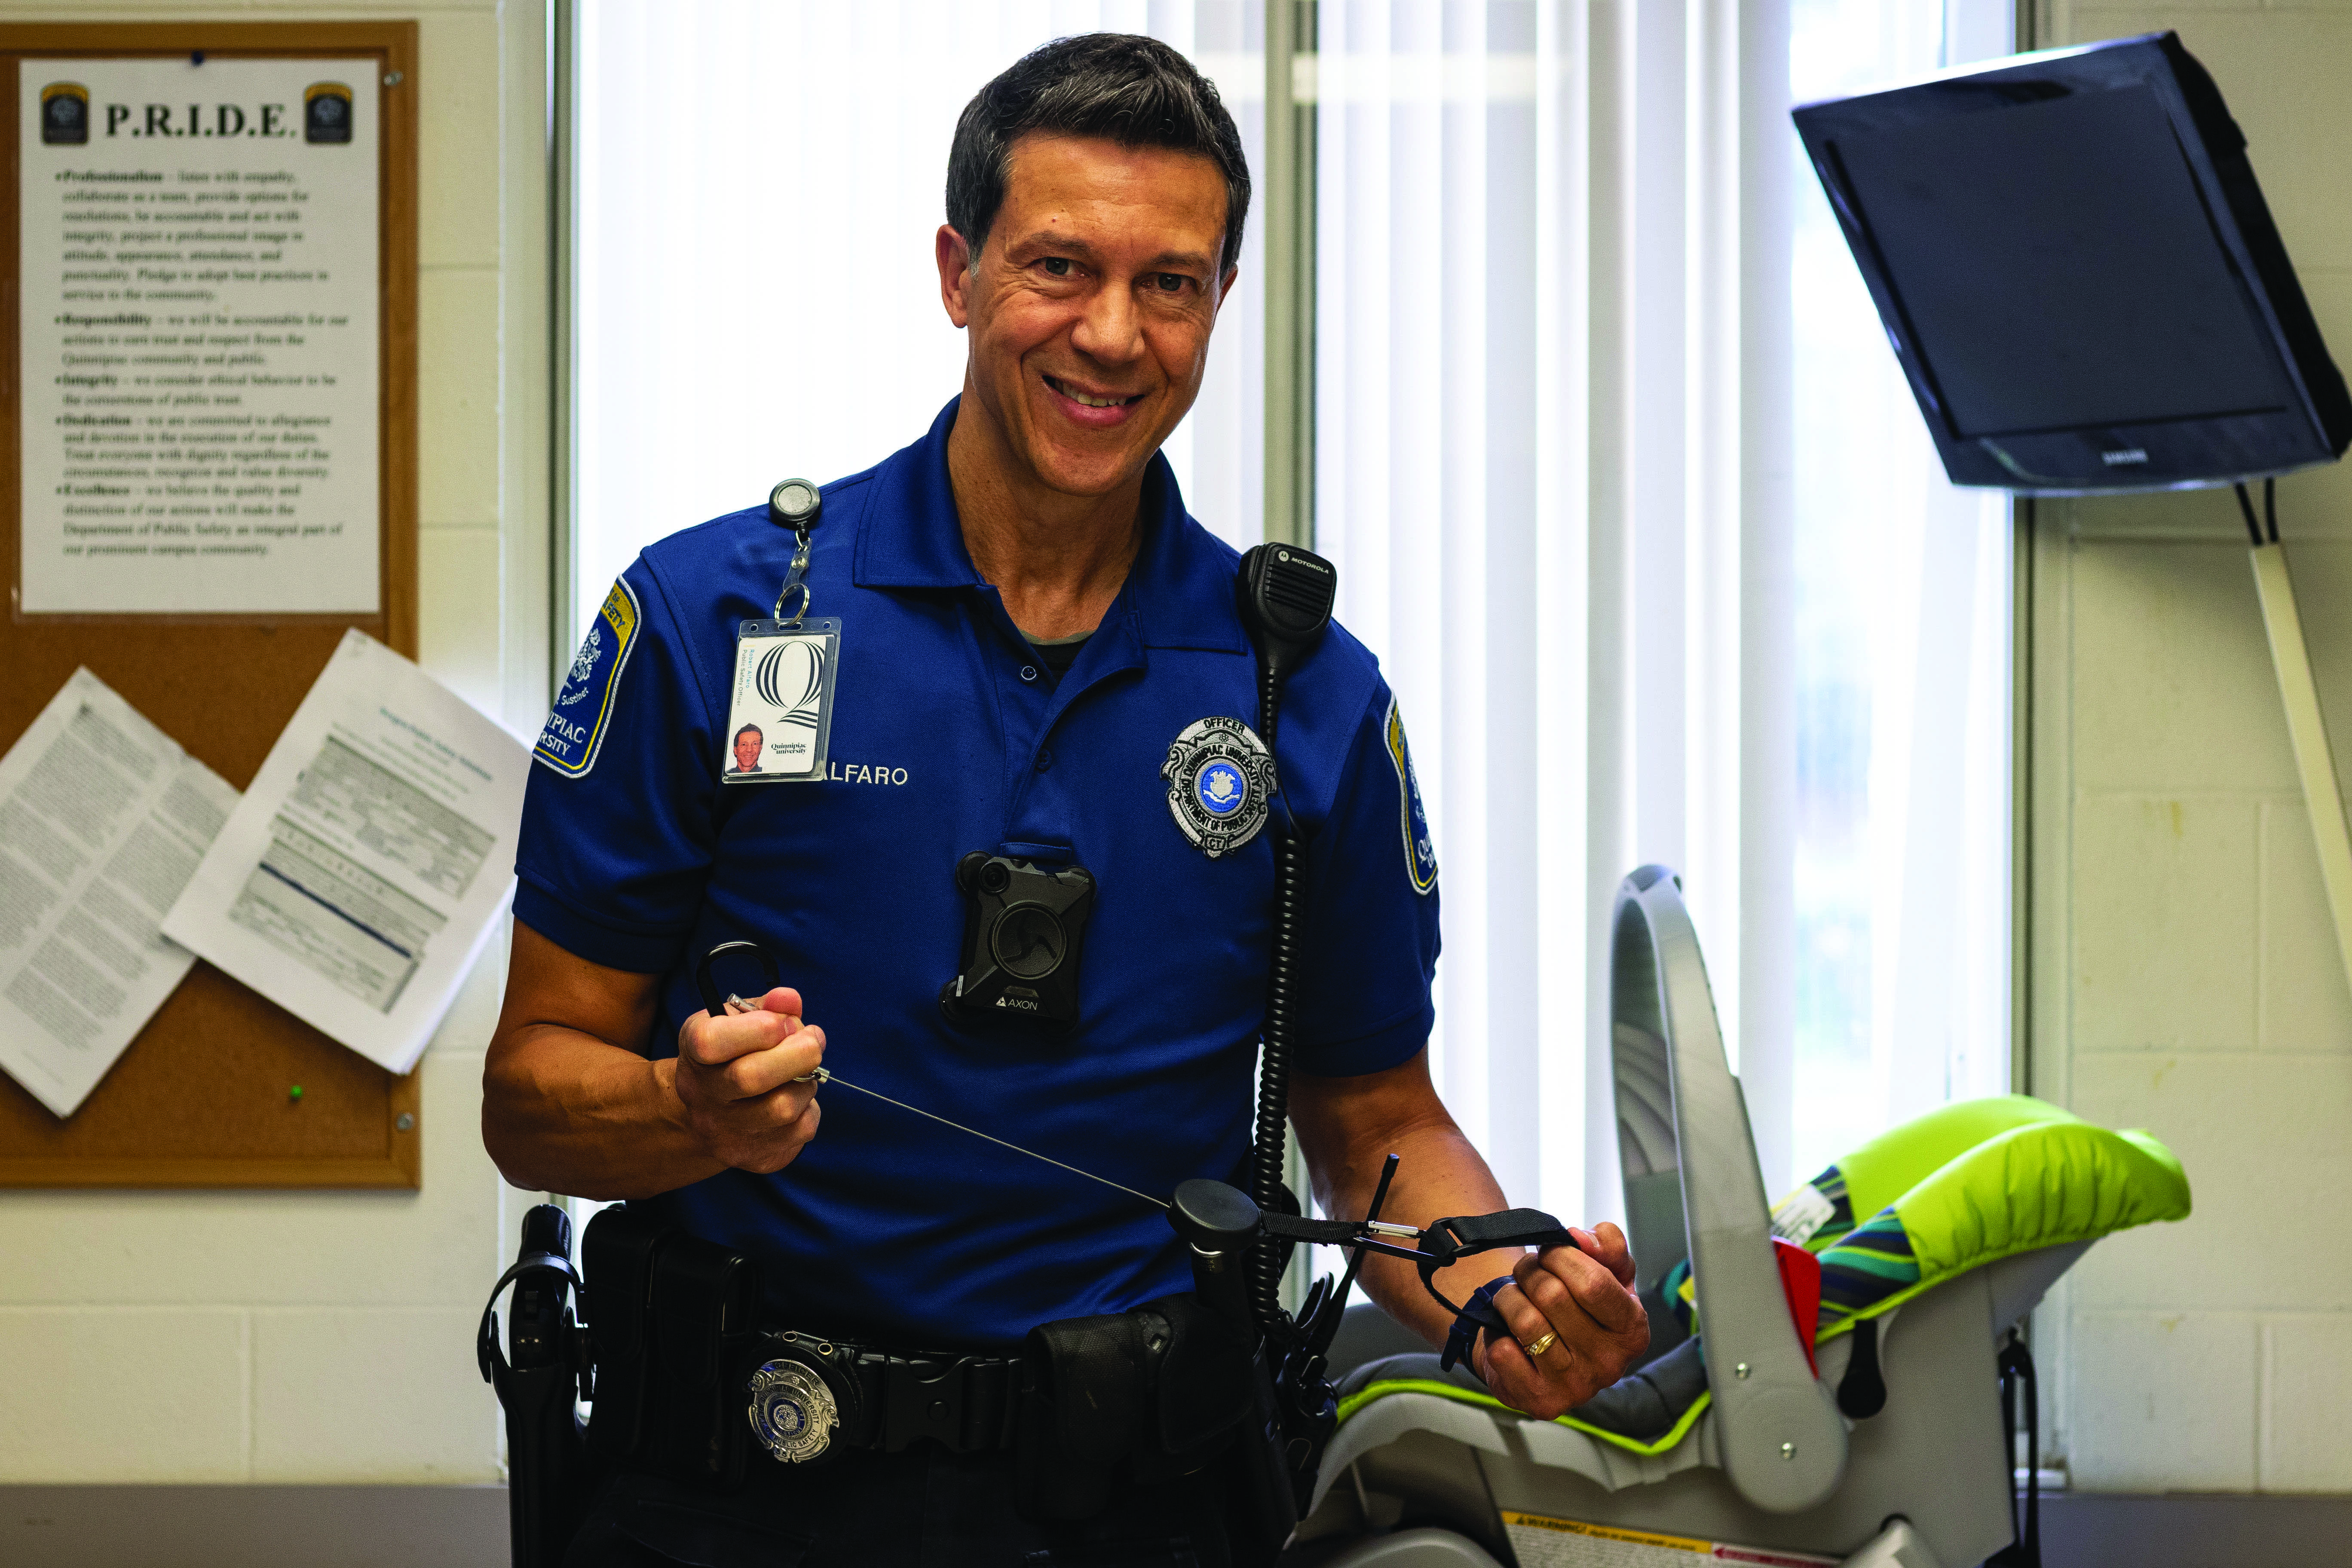 Quinnipiac University Public Safety Officer Invents 'Hooked on Baby'